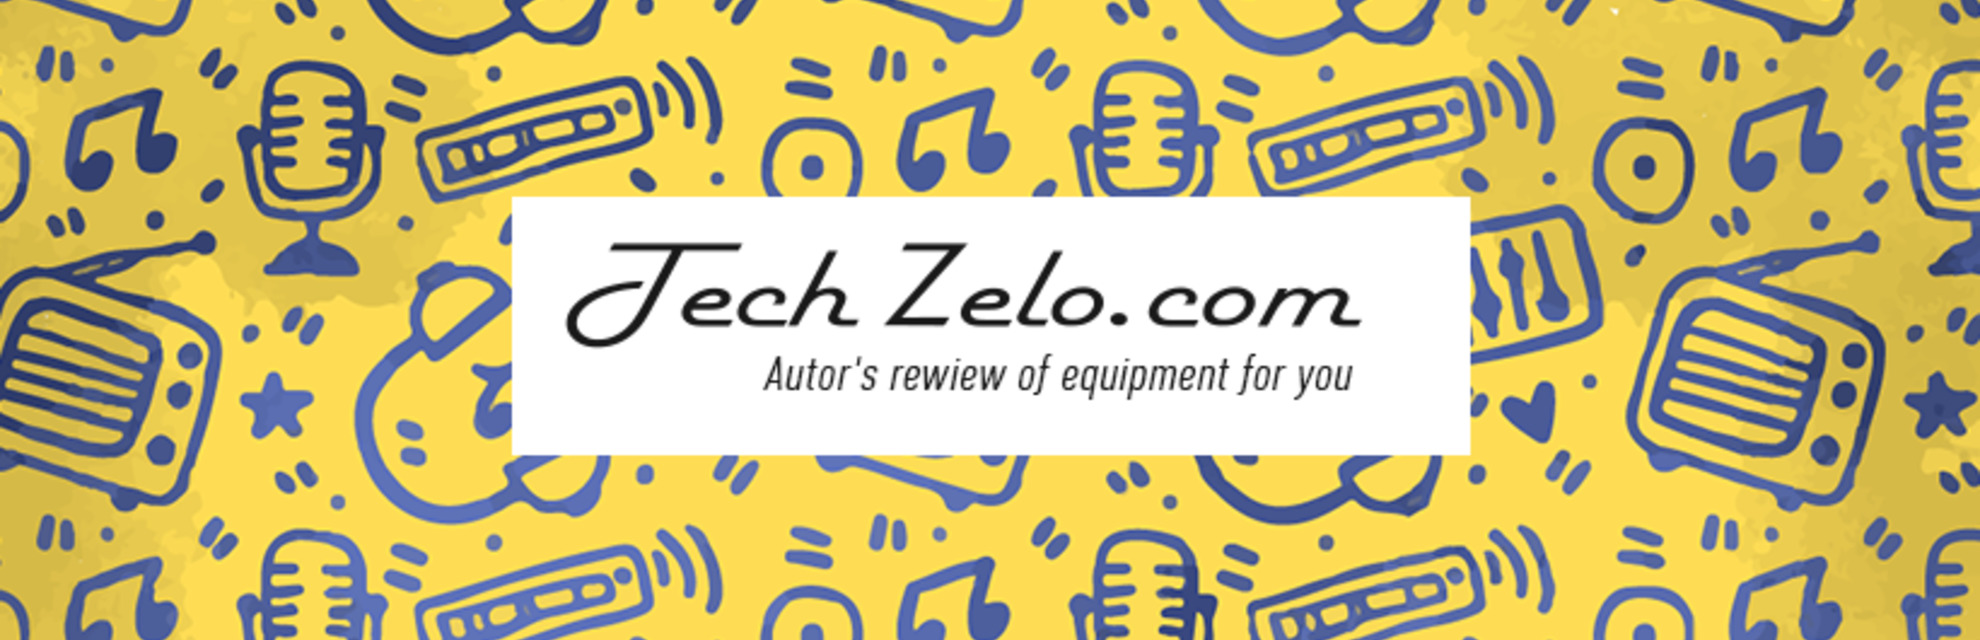 Techzelo blog header photo